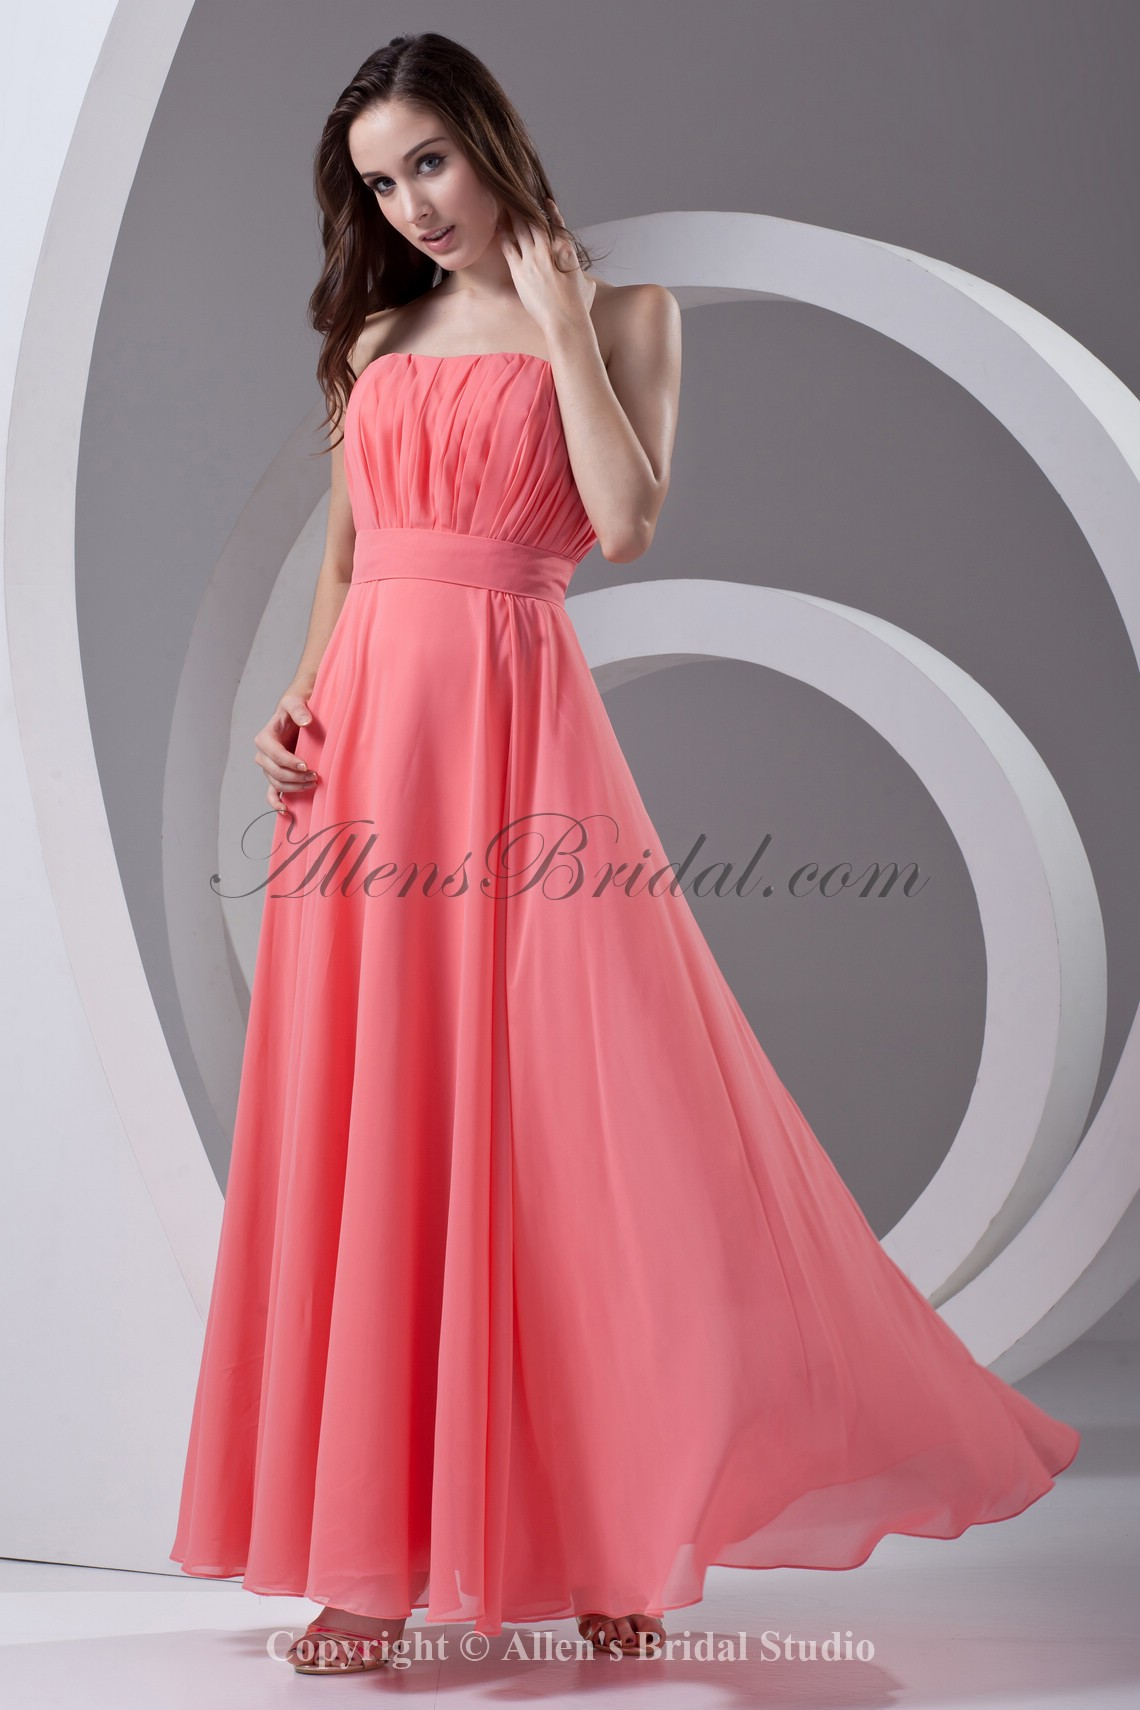 /346-2767/chiffon-strapless-neckline-column-floor-length-sash-prom-dress.jpg